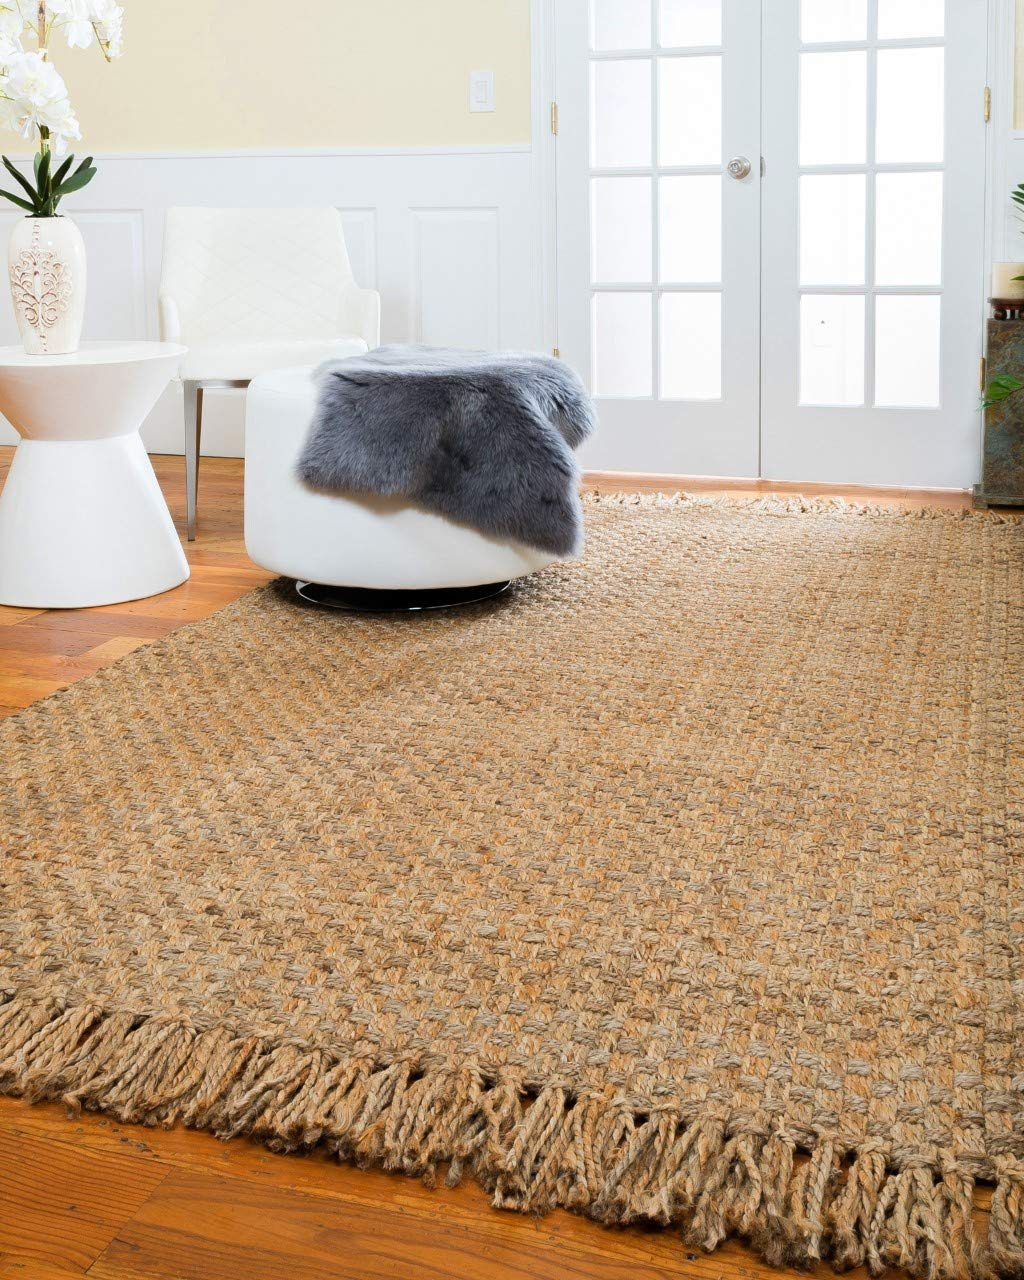 Natural Area Rugs Natural Fiber, Handmade Reversible Basketweave Chatsworth Jute Rug (6' x 9') Beige